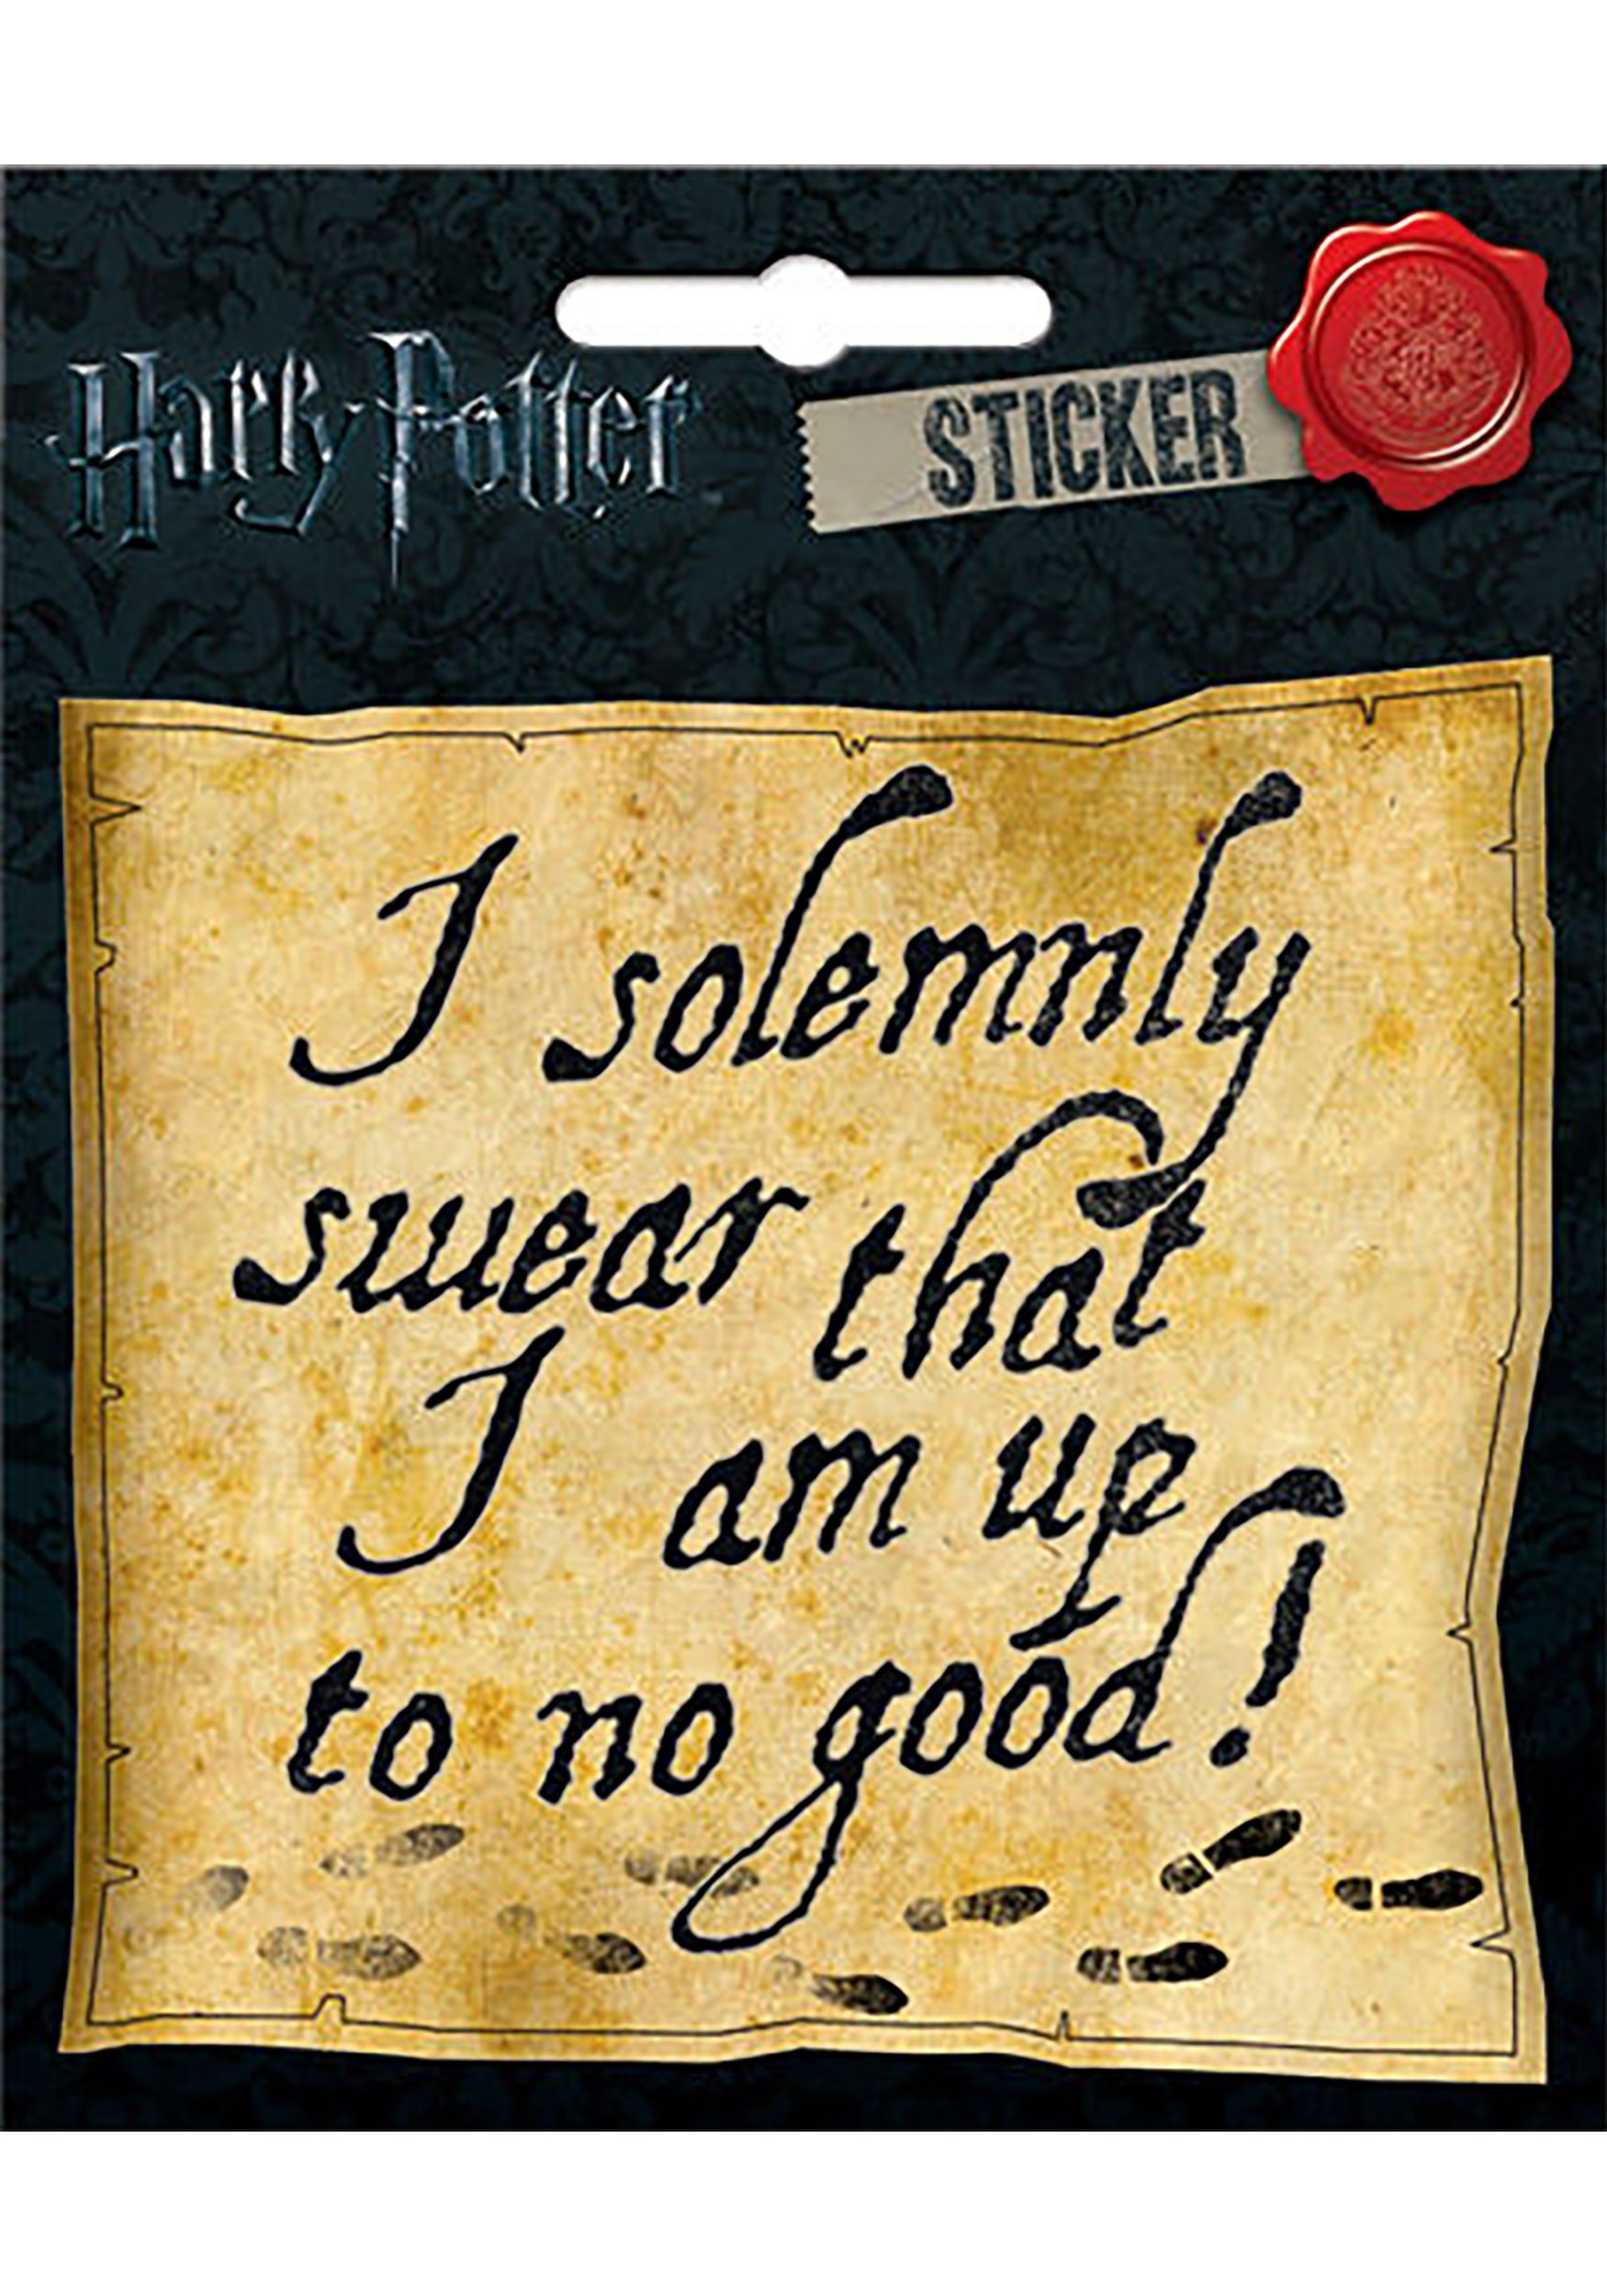 Harry Potter Hogwarts Map Sticker